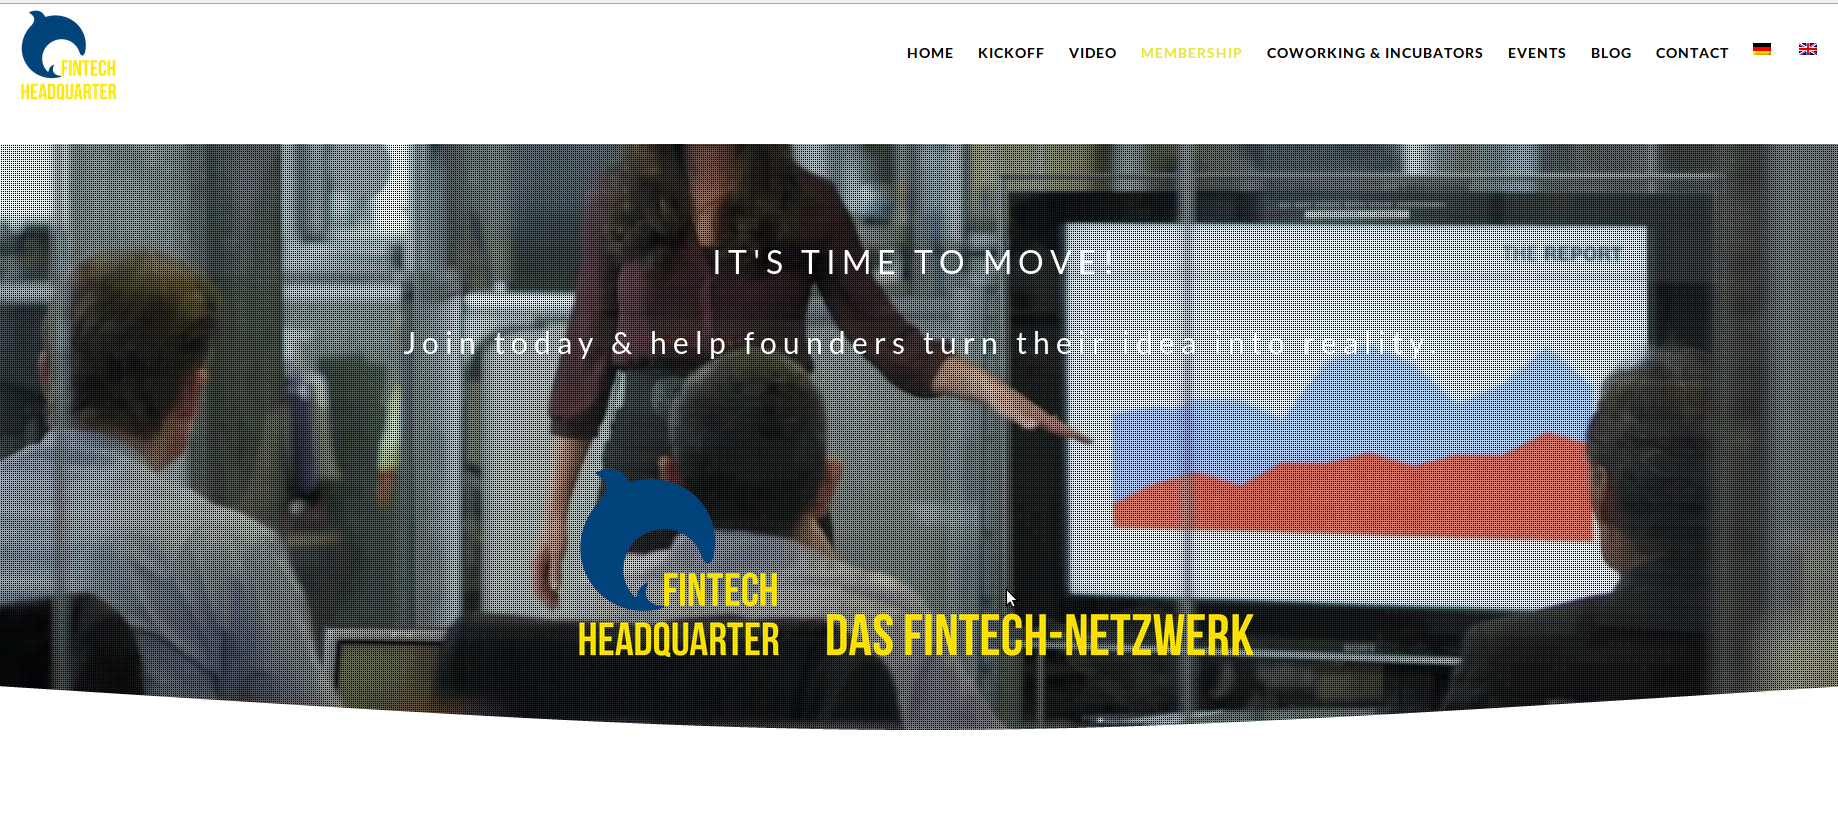 FinTech Headquarter